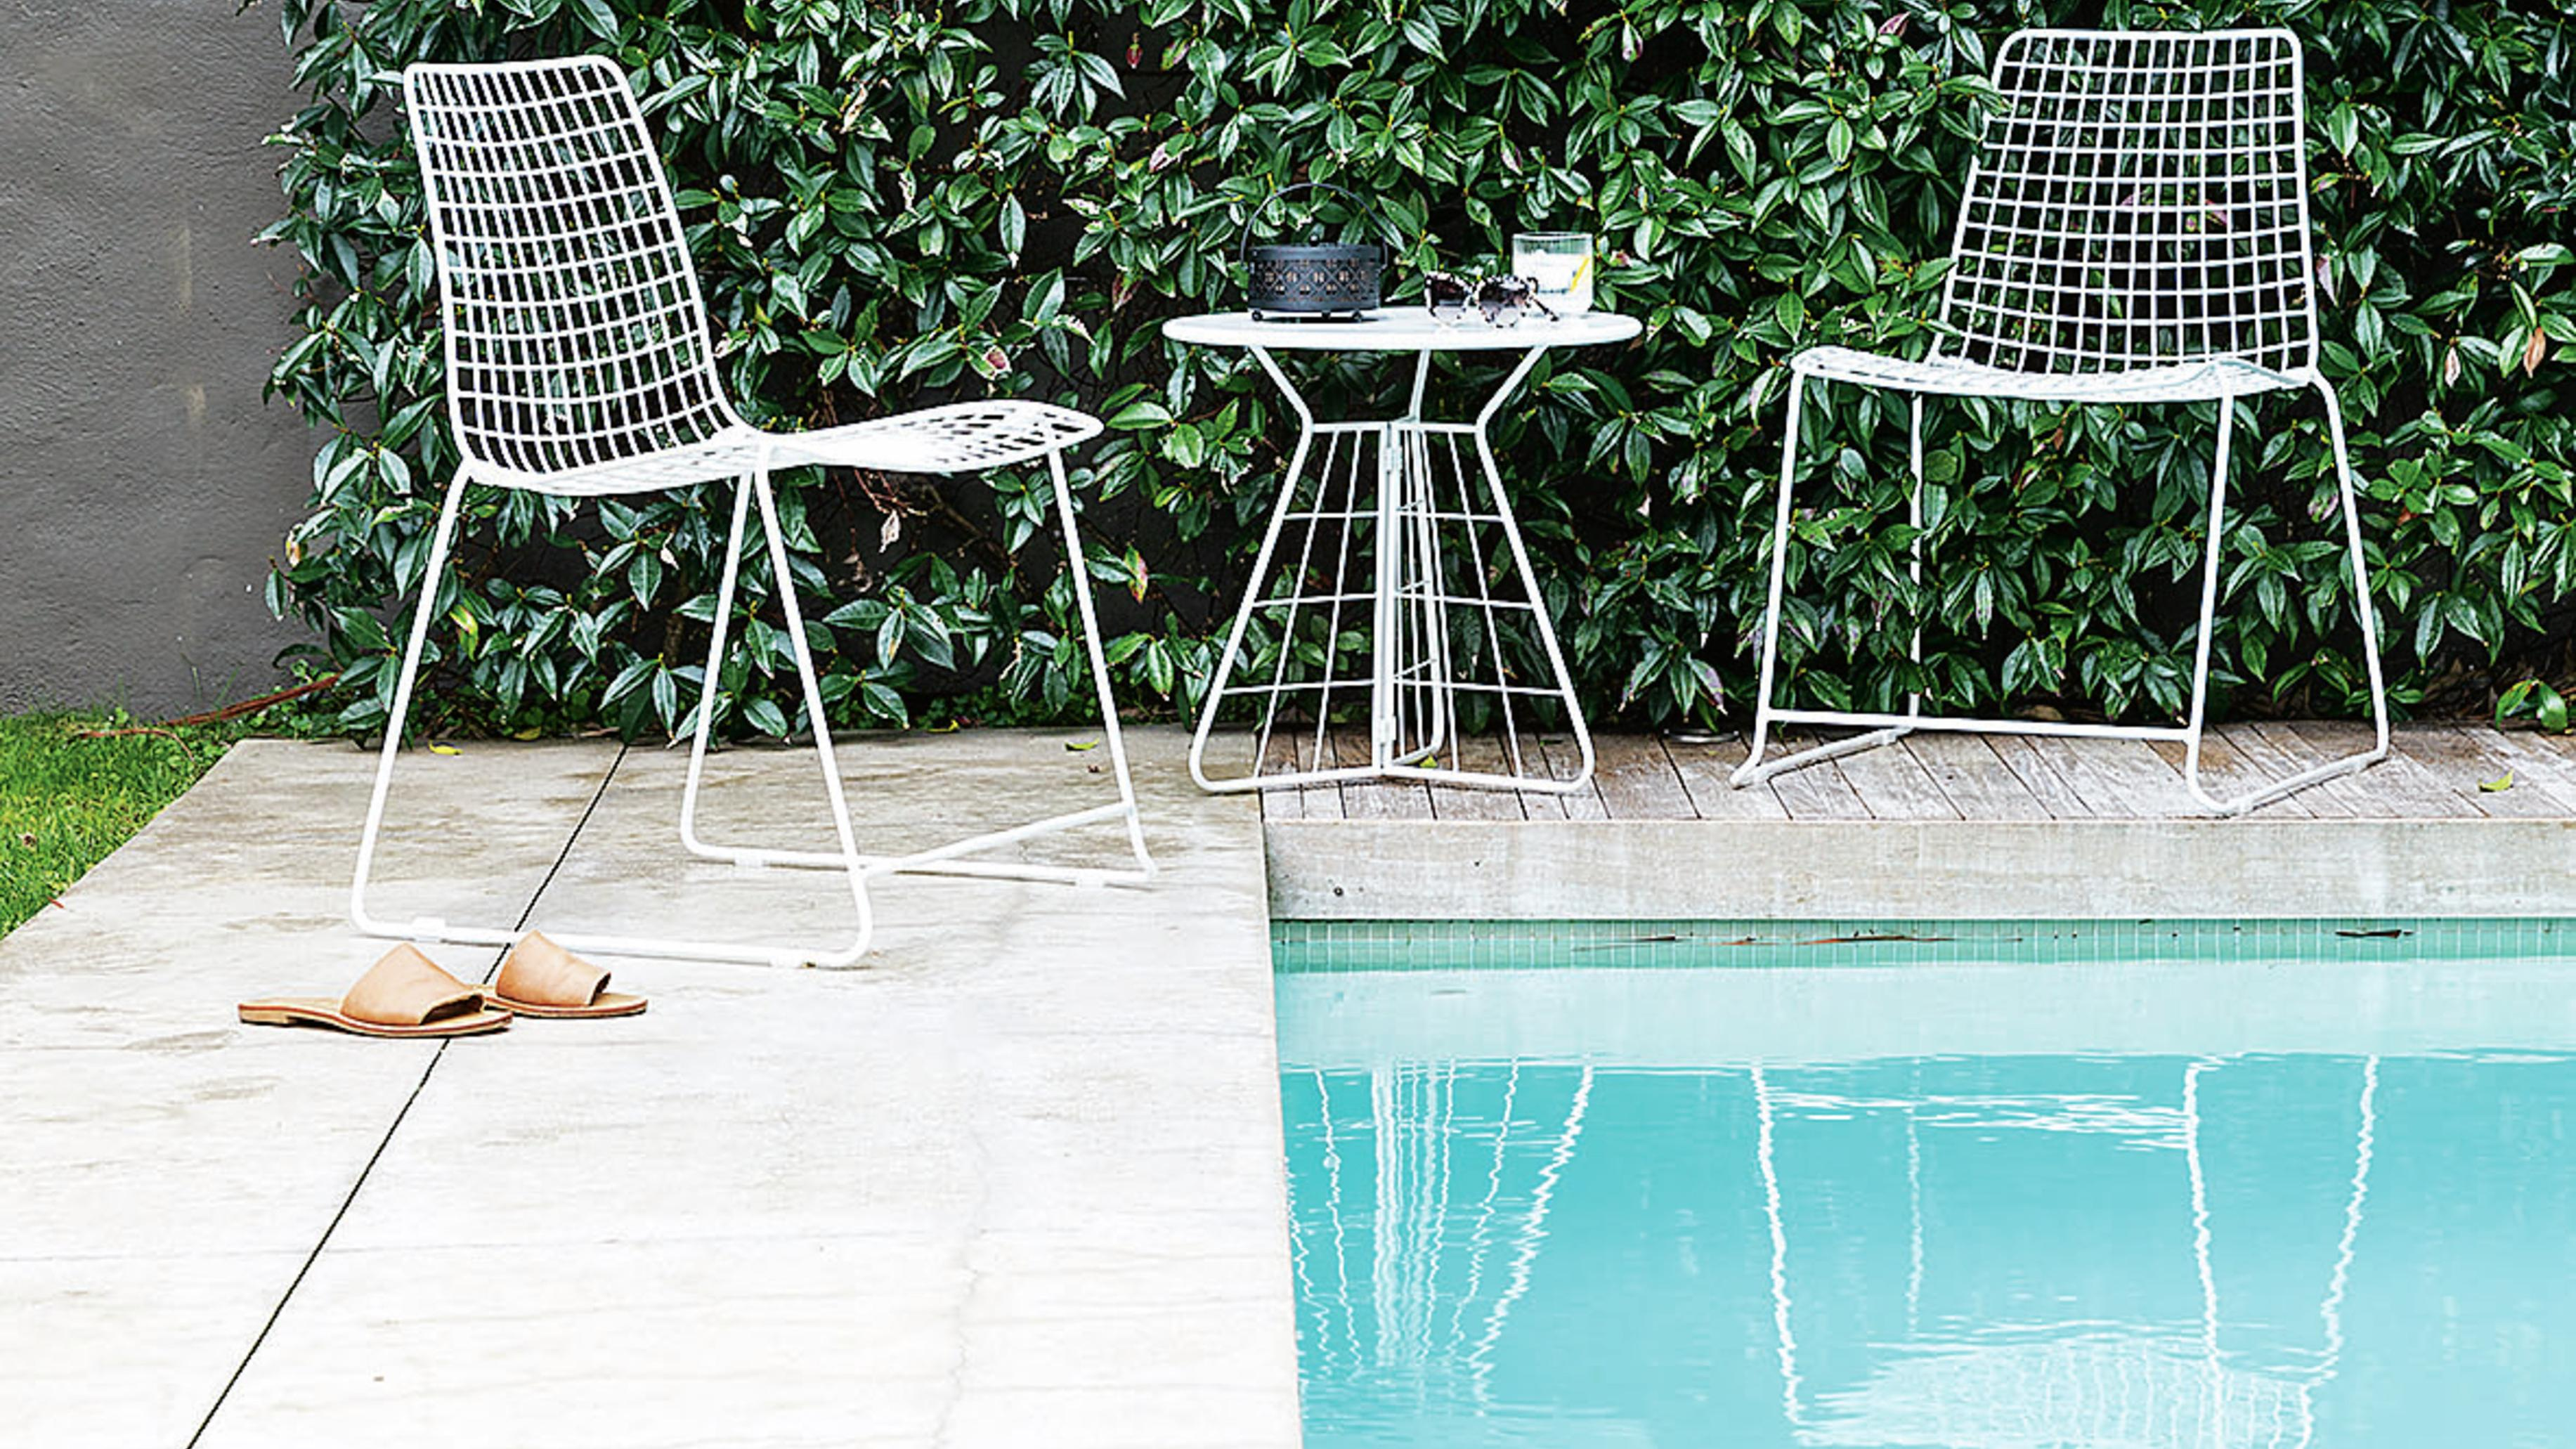 A pool with outdoor tiles and some chairs.